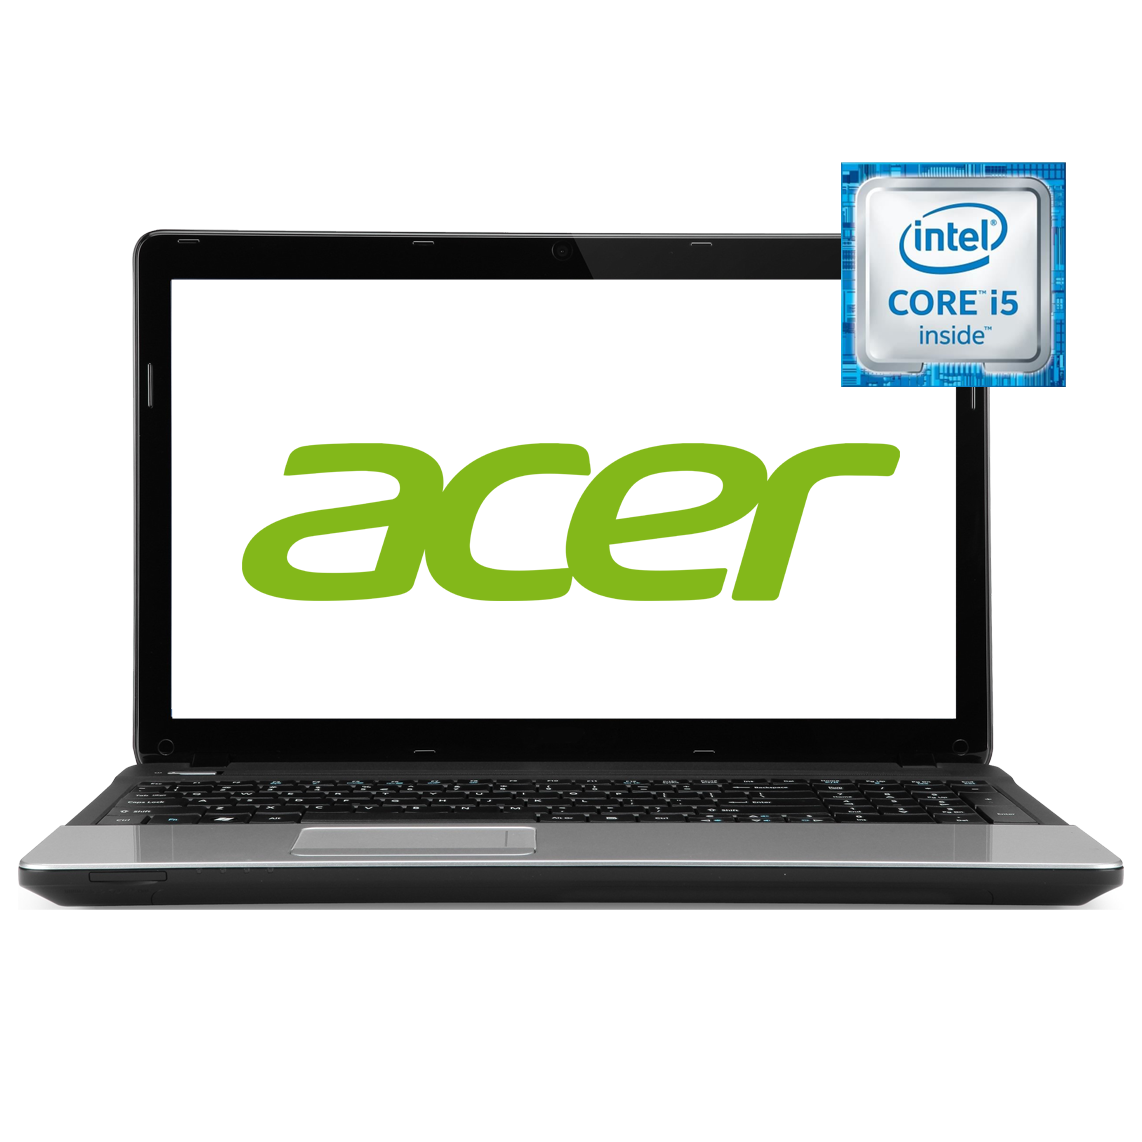 Acer - 15.6 inch Core i5 2nd Gen